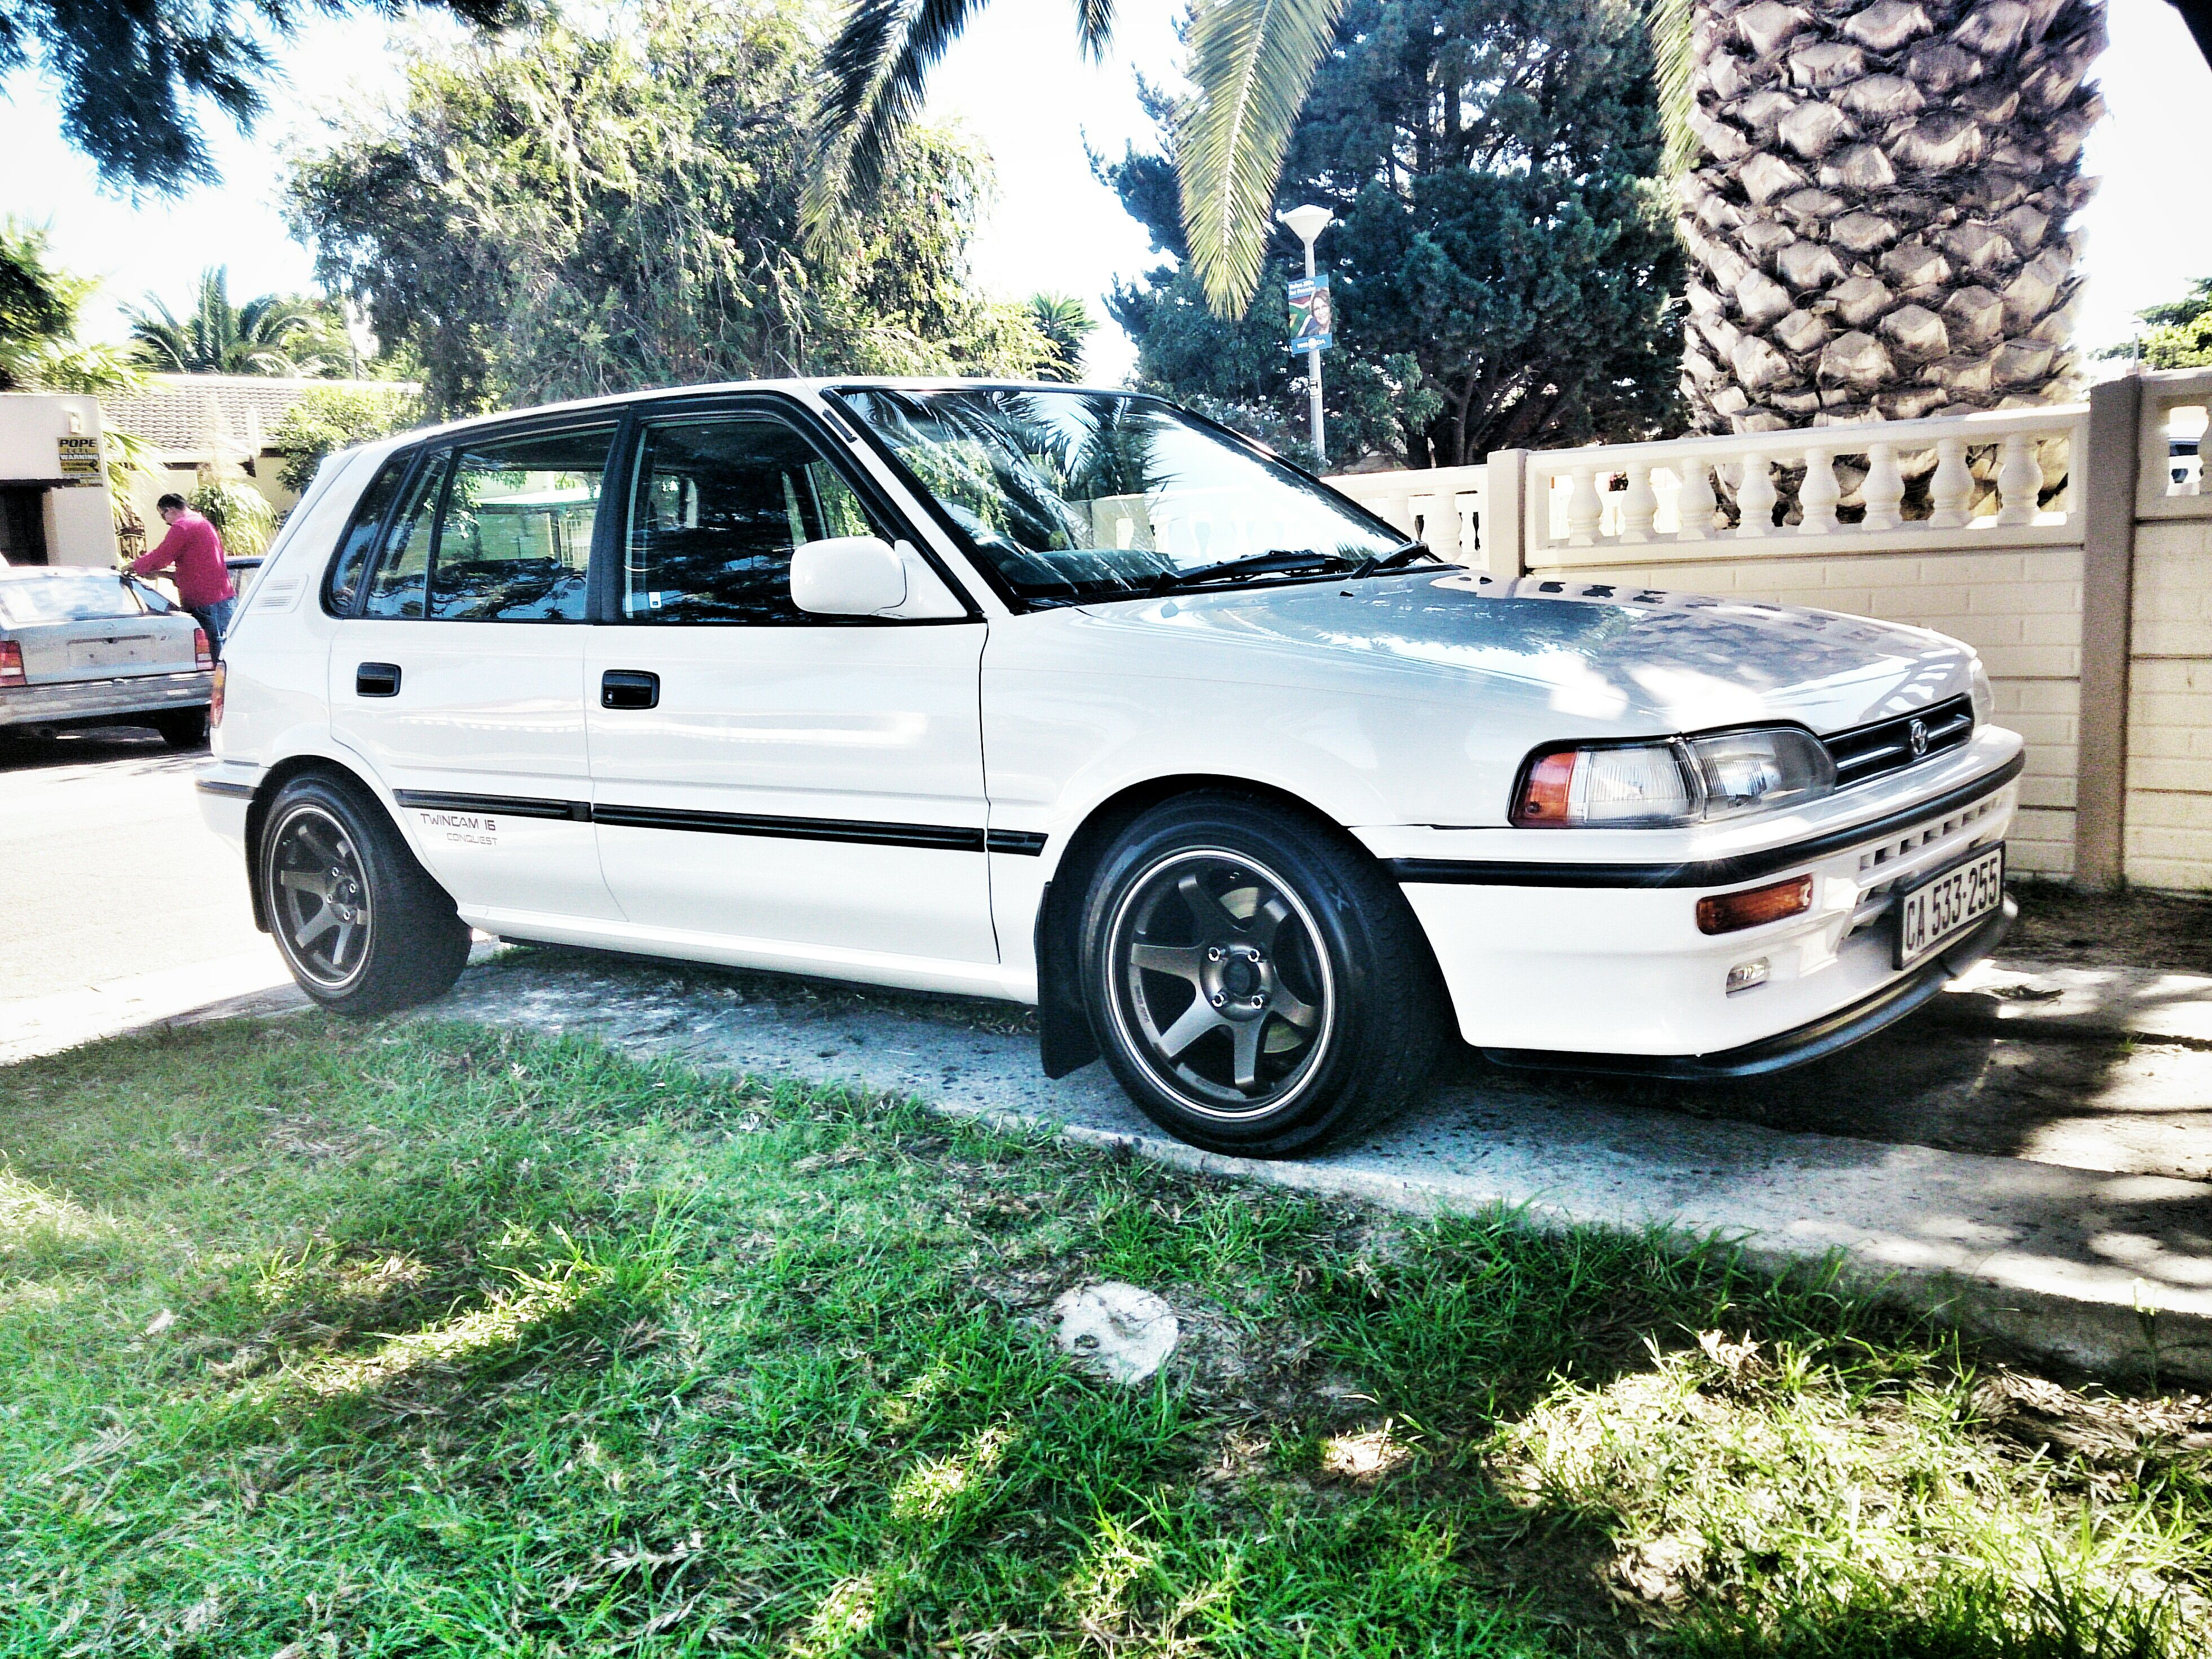 my ae92 toyota corolla jdm cool cars cars and motorcycles automobile  [ 3920 x 2940 Pixel ]